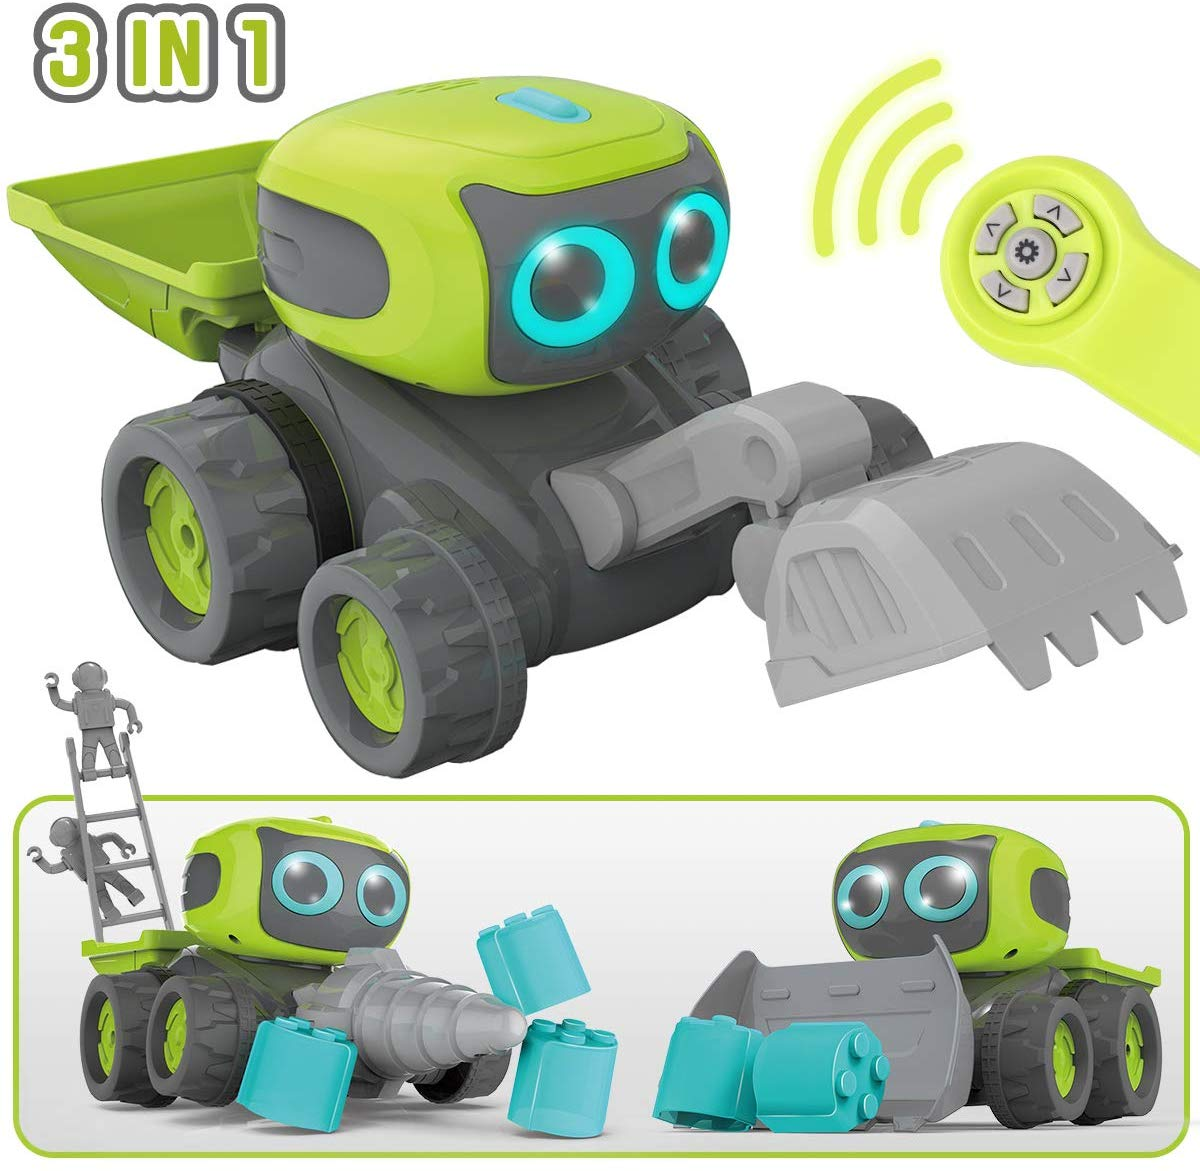 Remote Control Robot Toys for Kids